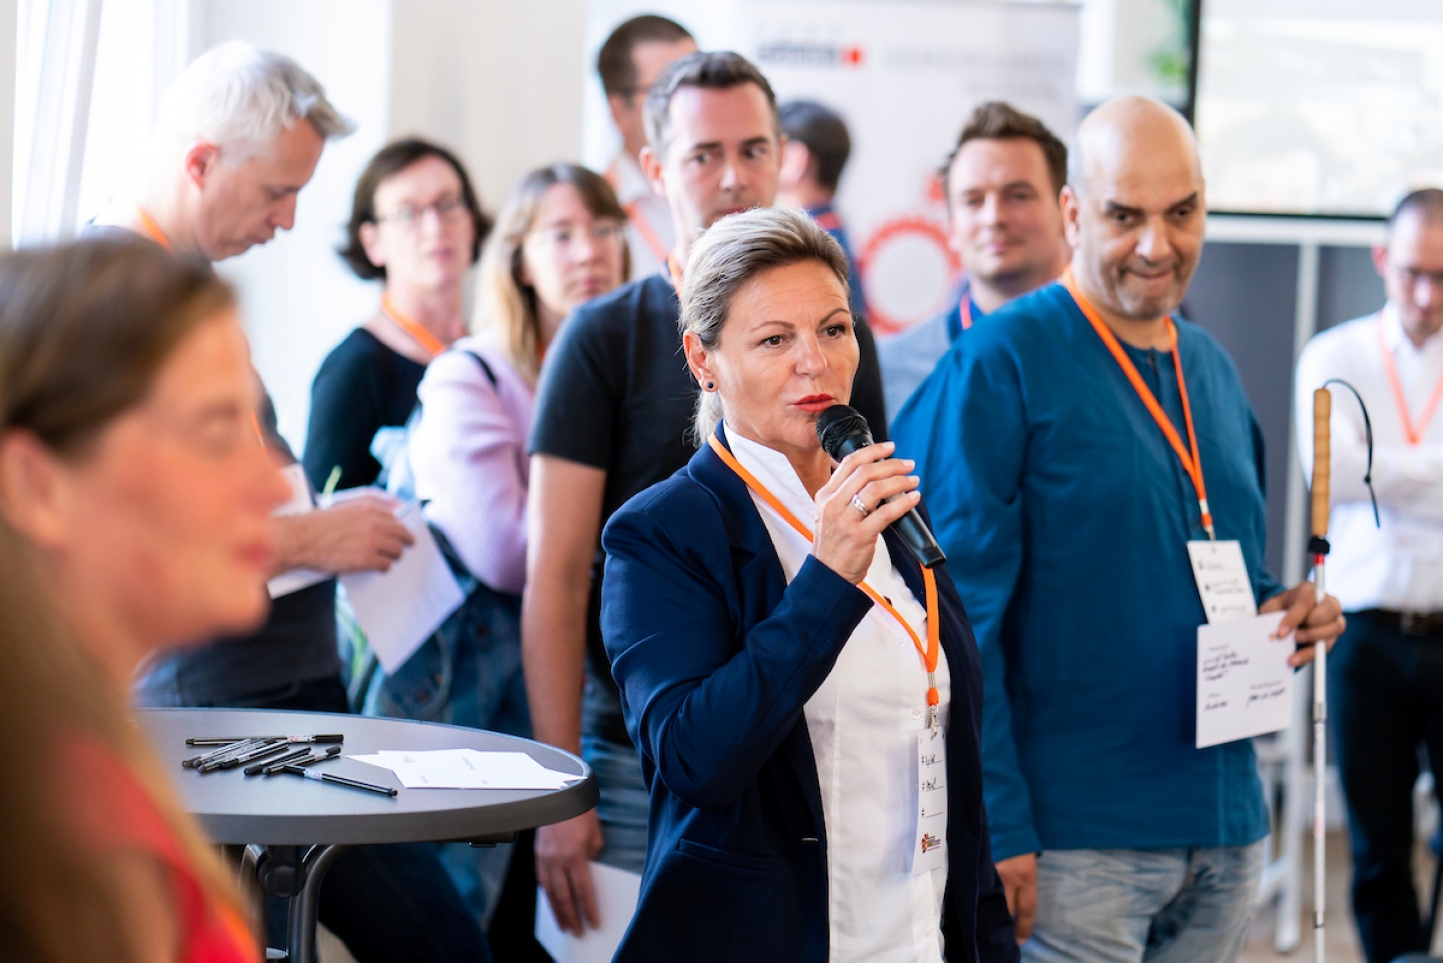 bring-together beim opentransfer Camp 2018